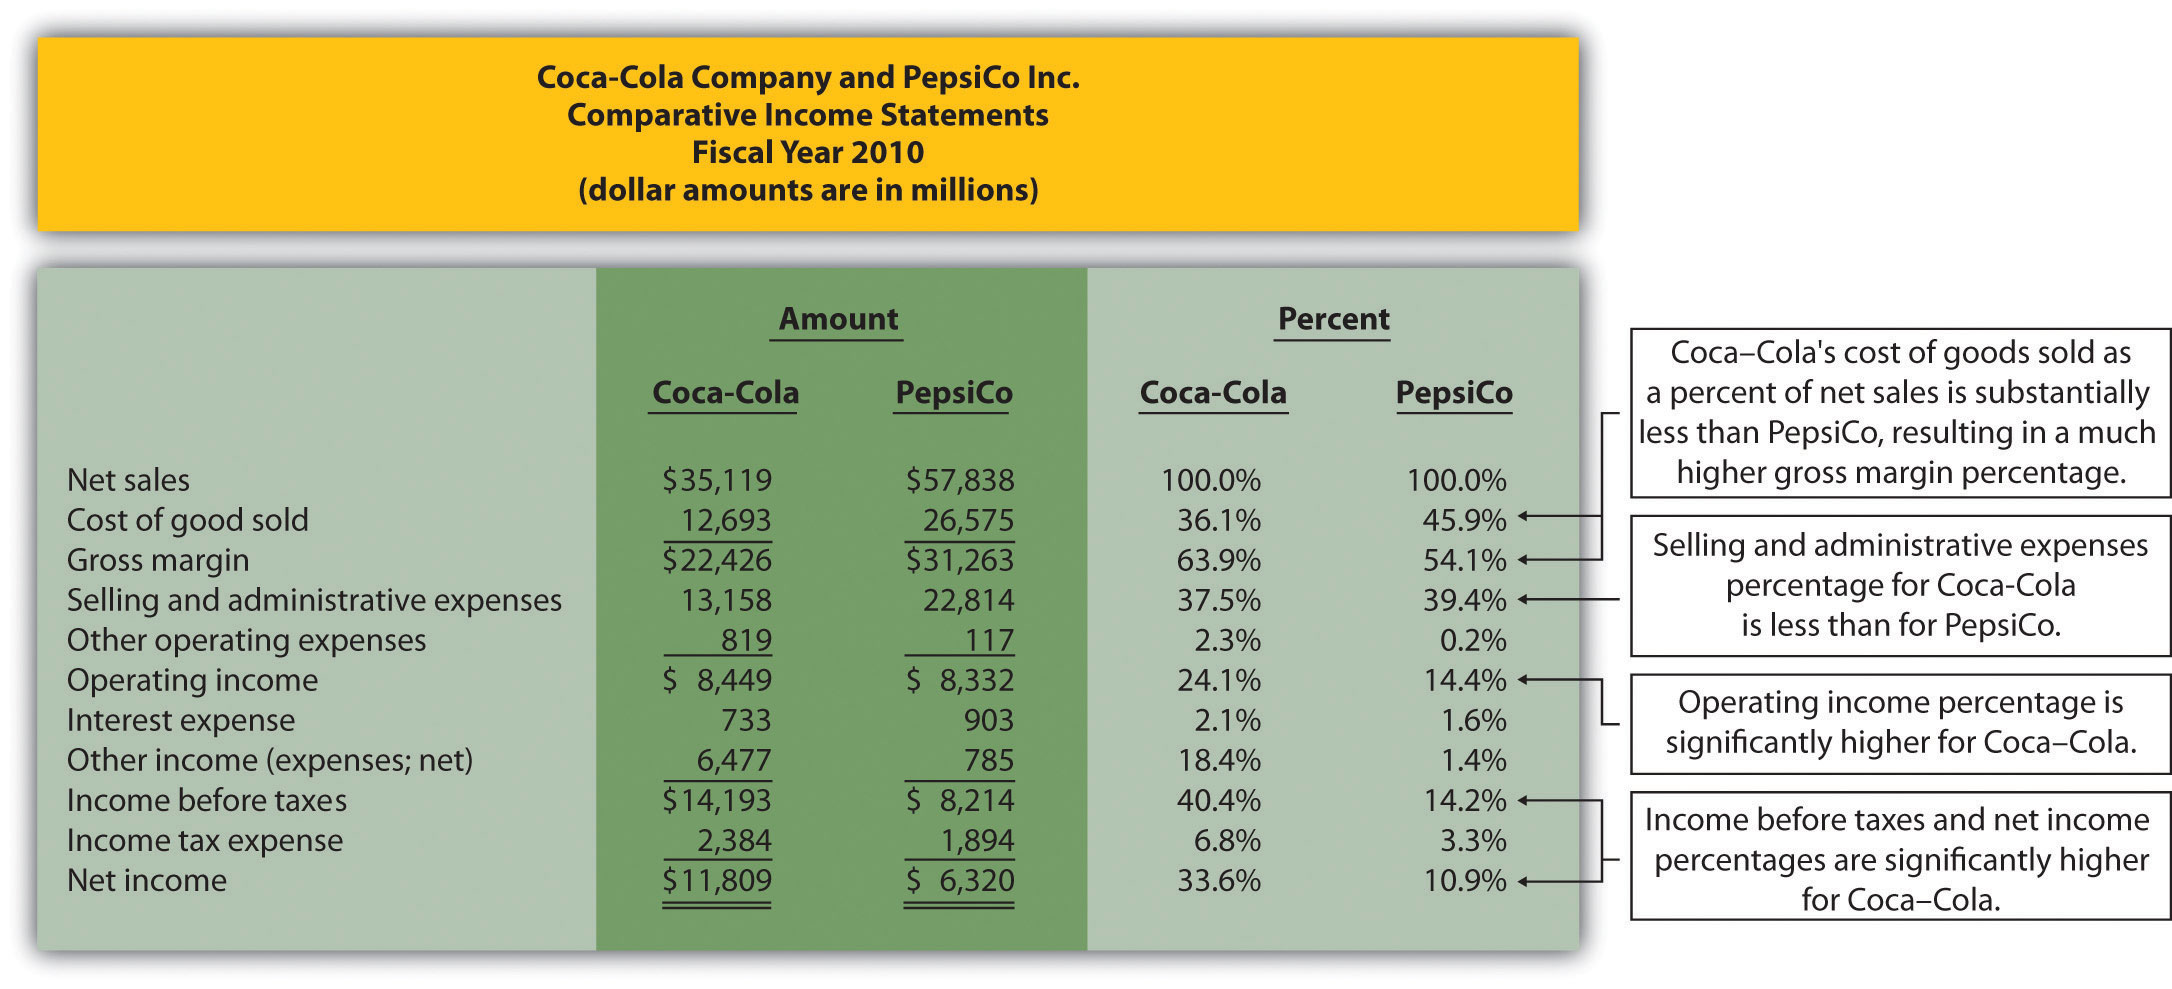 analysis of the financial statements of coca cola finance essay Analyzing financial statements: coca-cola vs pepsi coca cola vs pepsi analysis, pepsico vs coca cola economics & finance | finance | term papers.